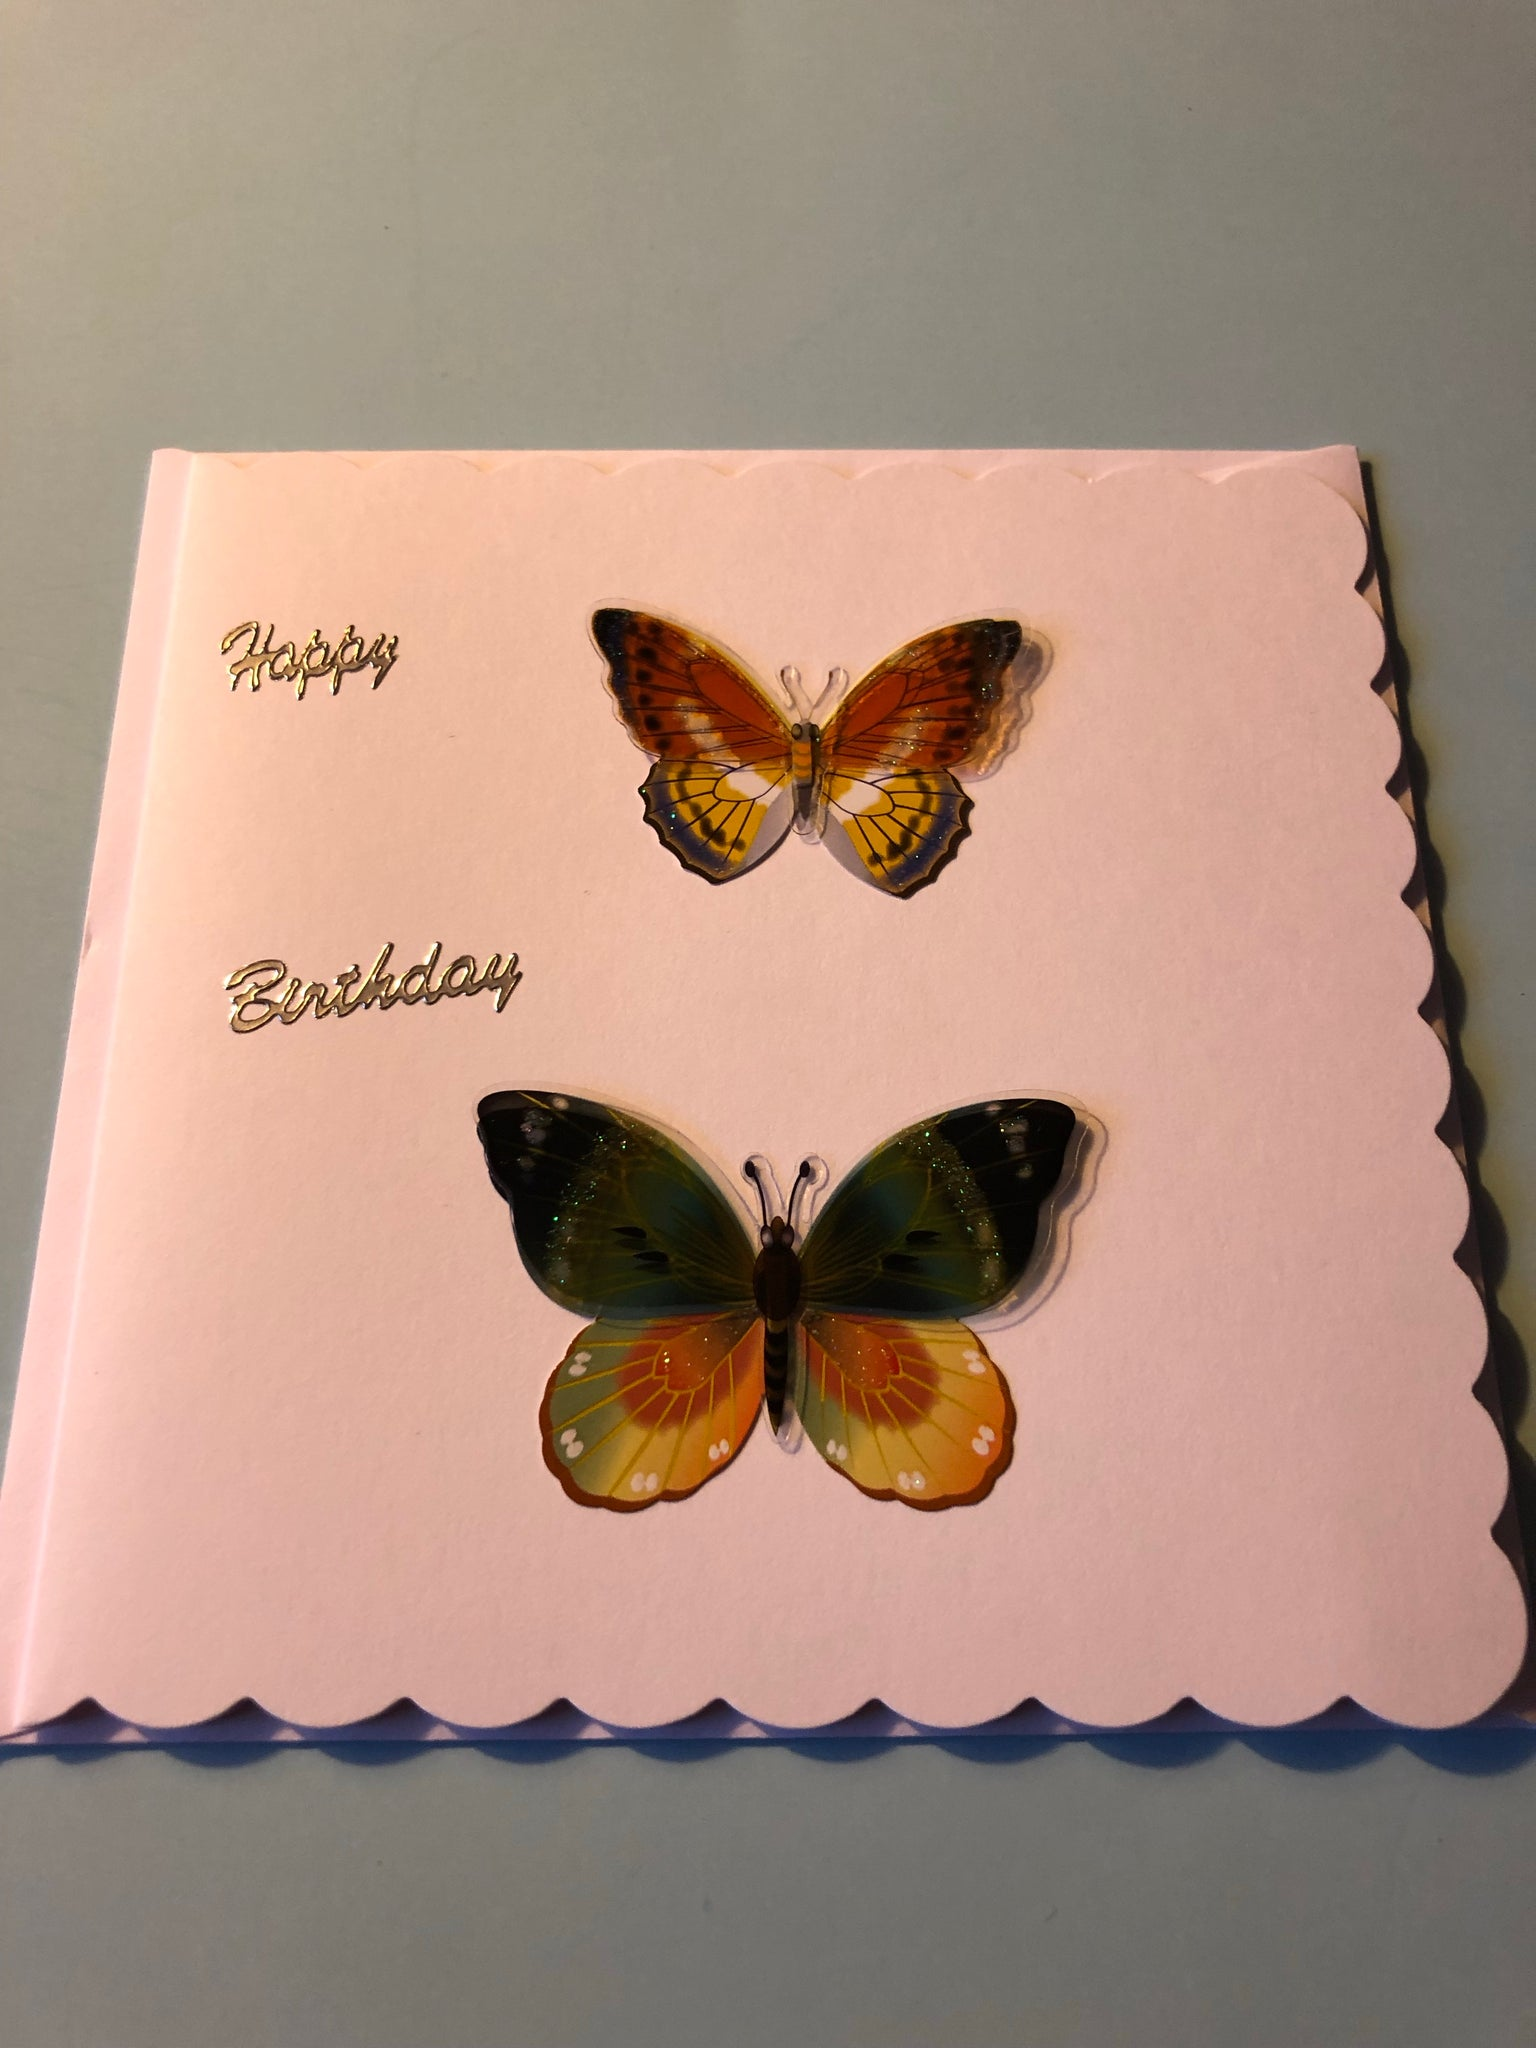 Women's Birthday butterfly card